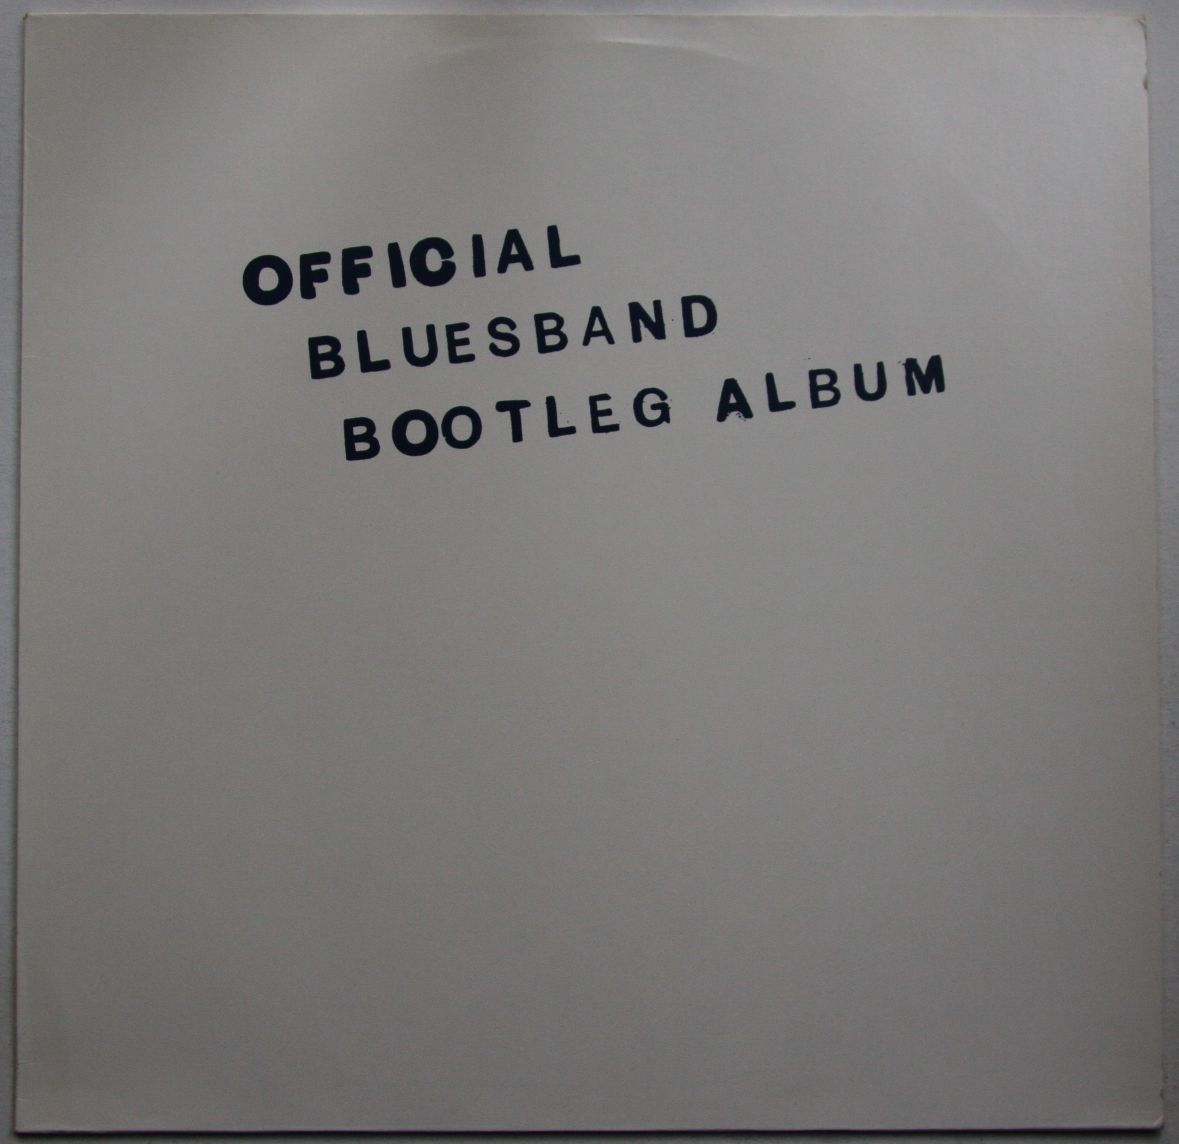 Official Bluesband Bootleg Album - Blues Band